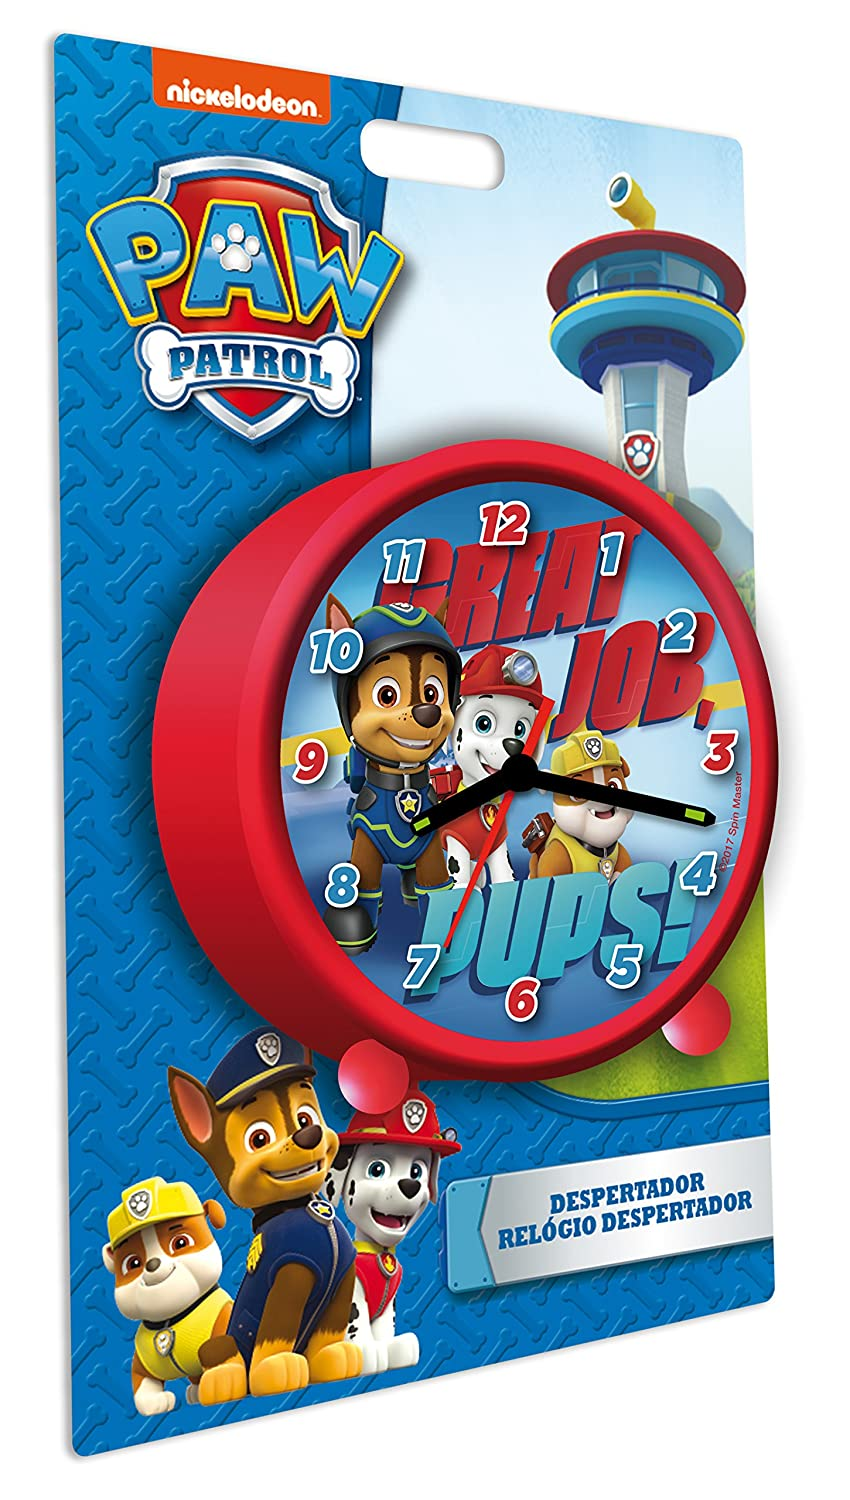 PAW PATROL PawPatrol Reloj Despertador Kids PW16334: Amazon ...